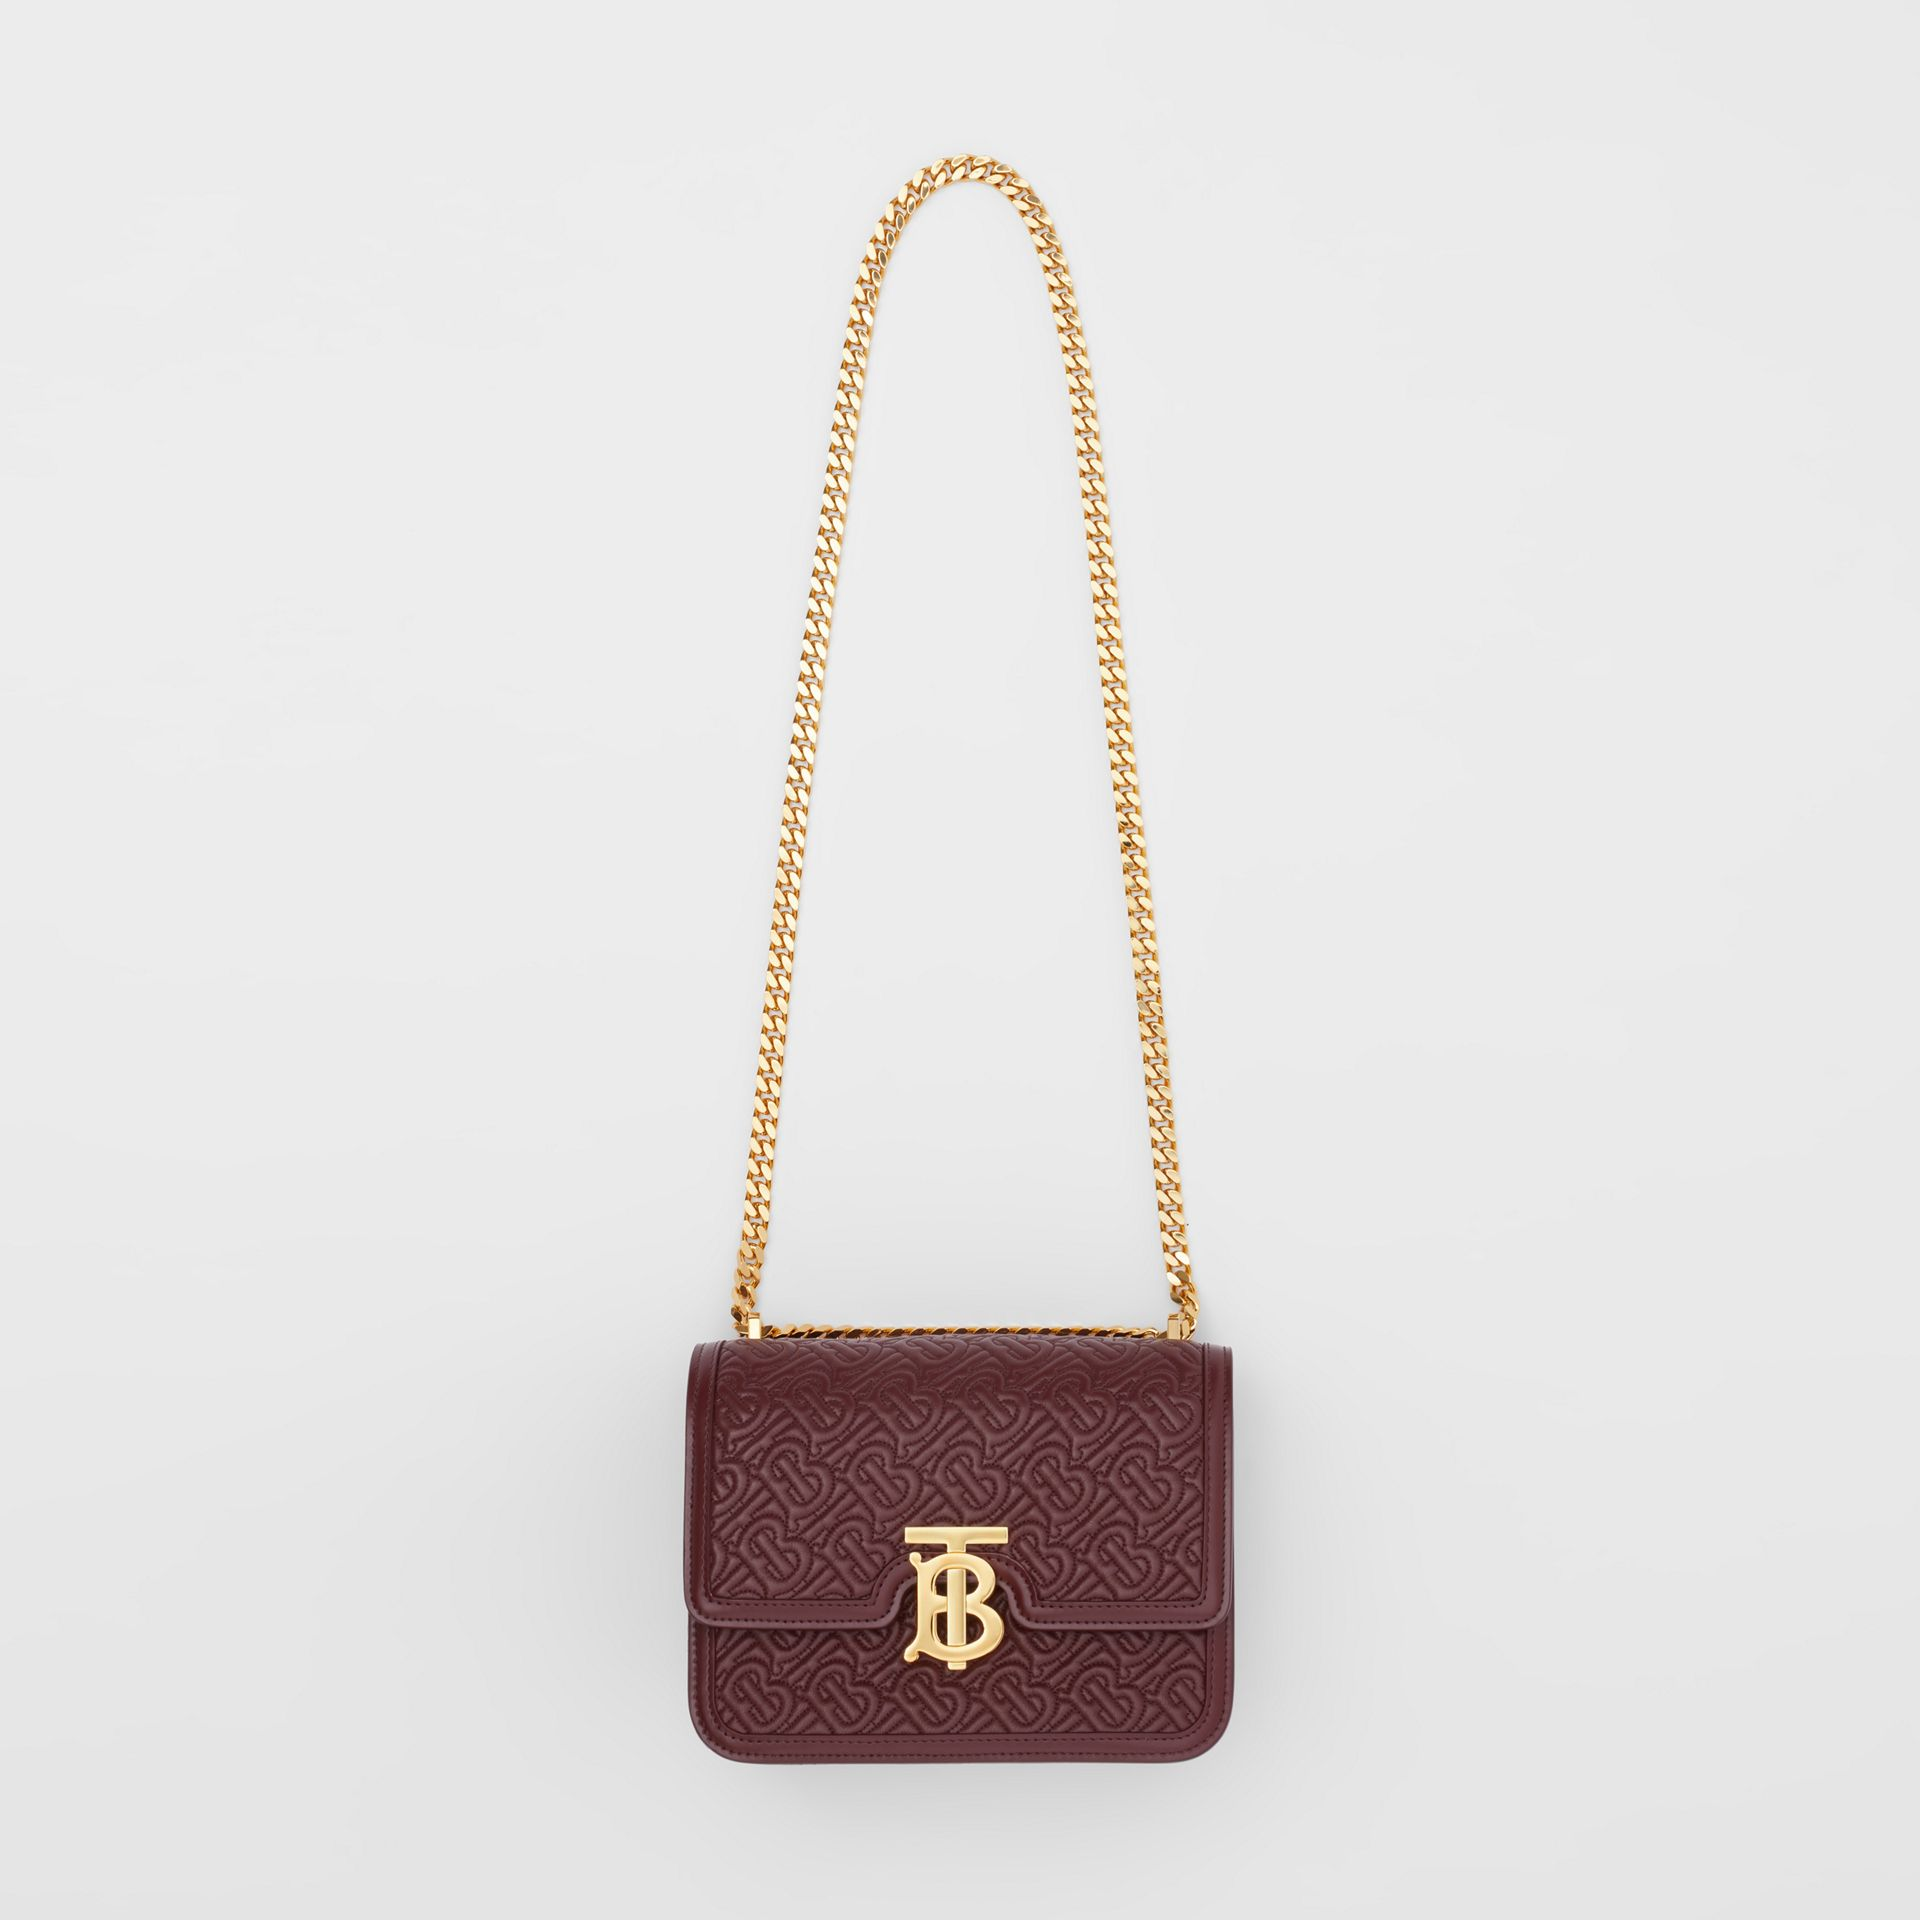 Small Quilted Monogram Lambskin TB Bag in Oxblood - Women | Burberry United Kingdom - gallery image 2